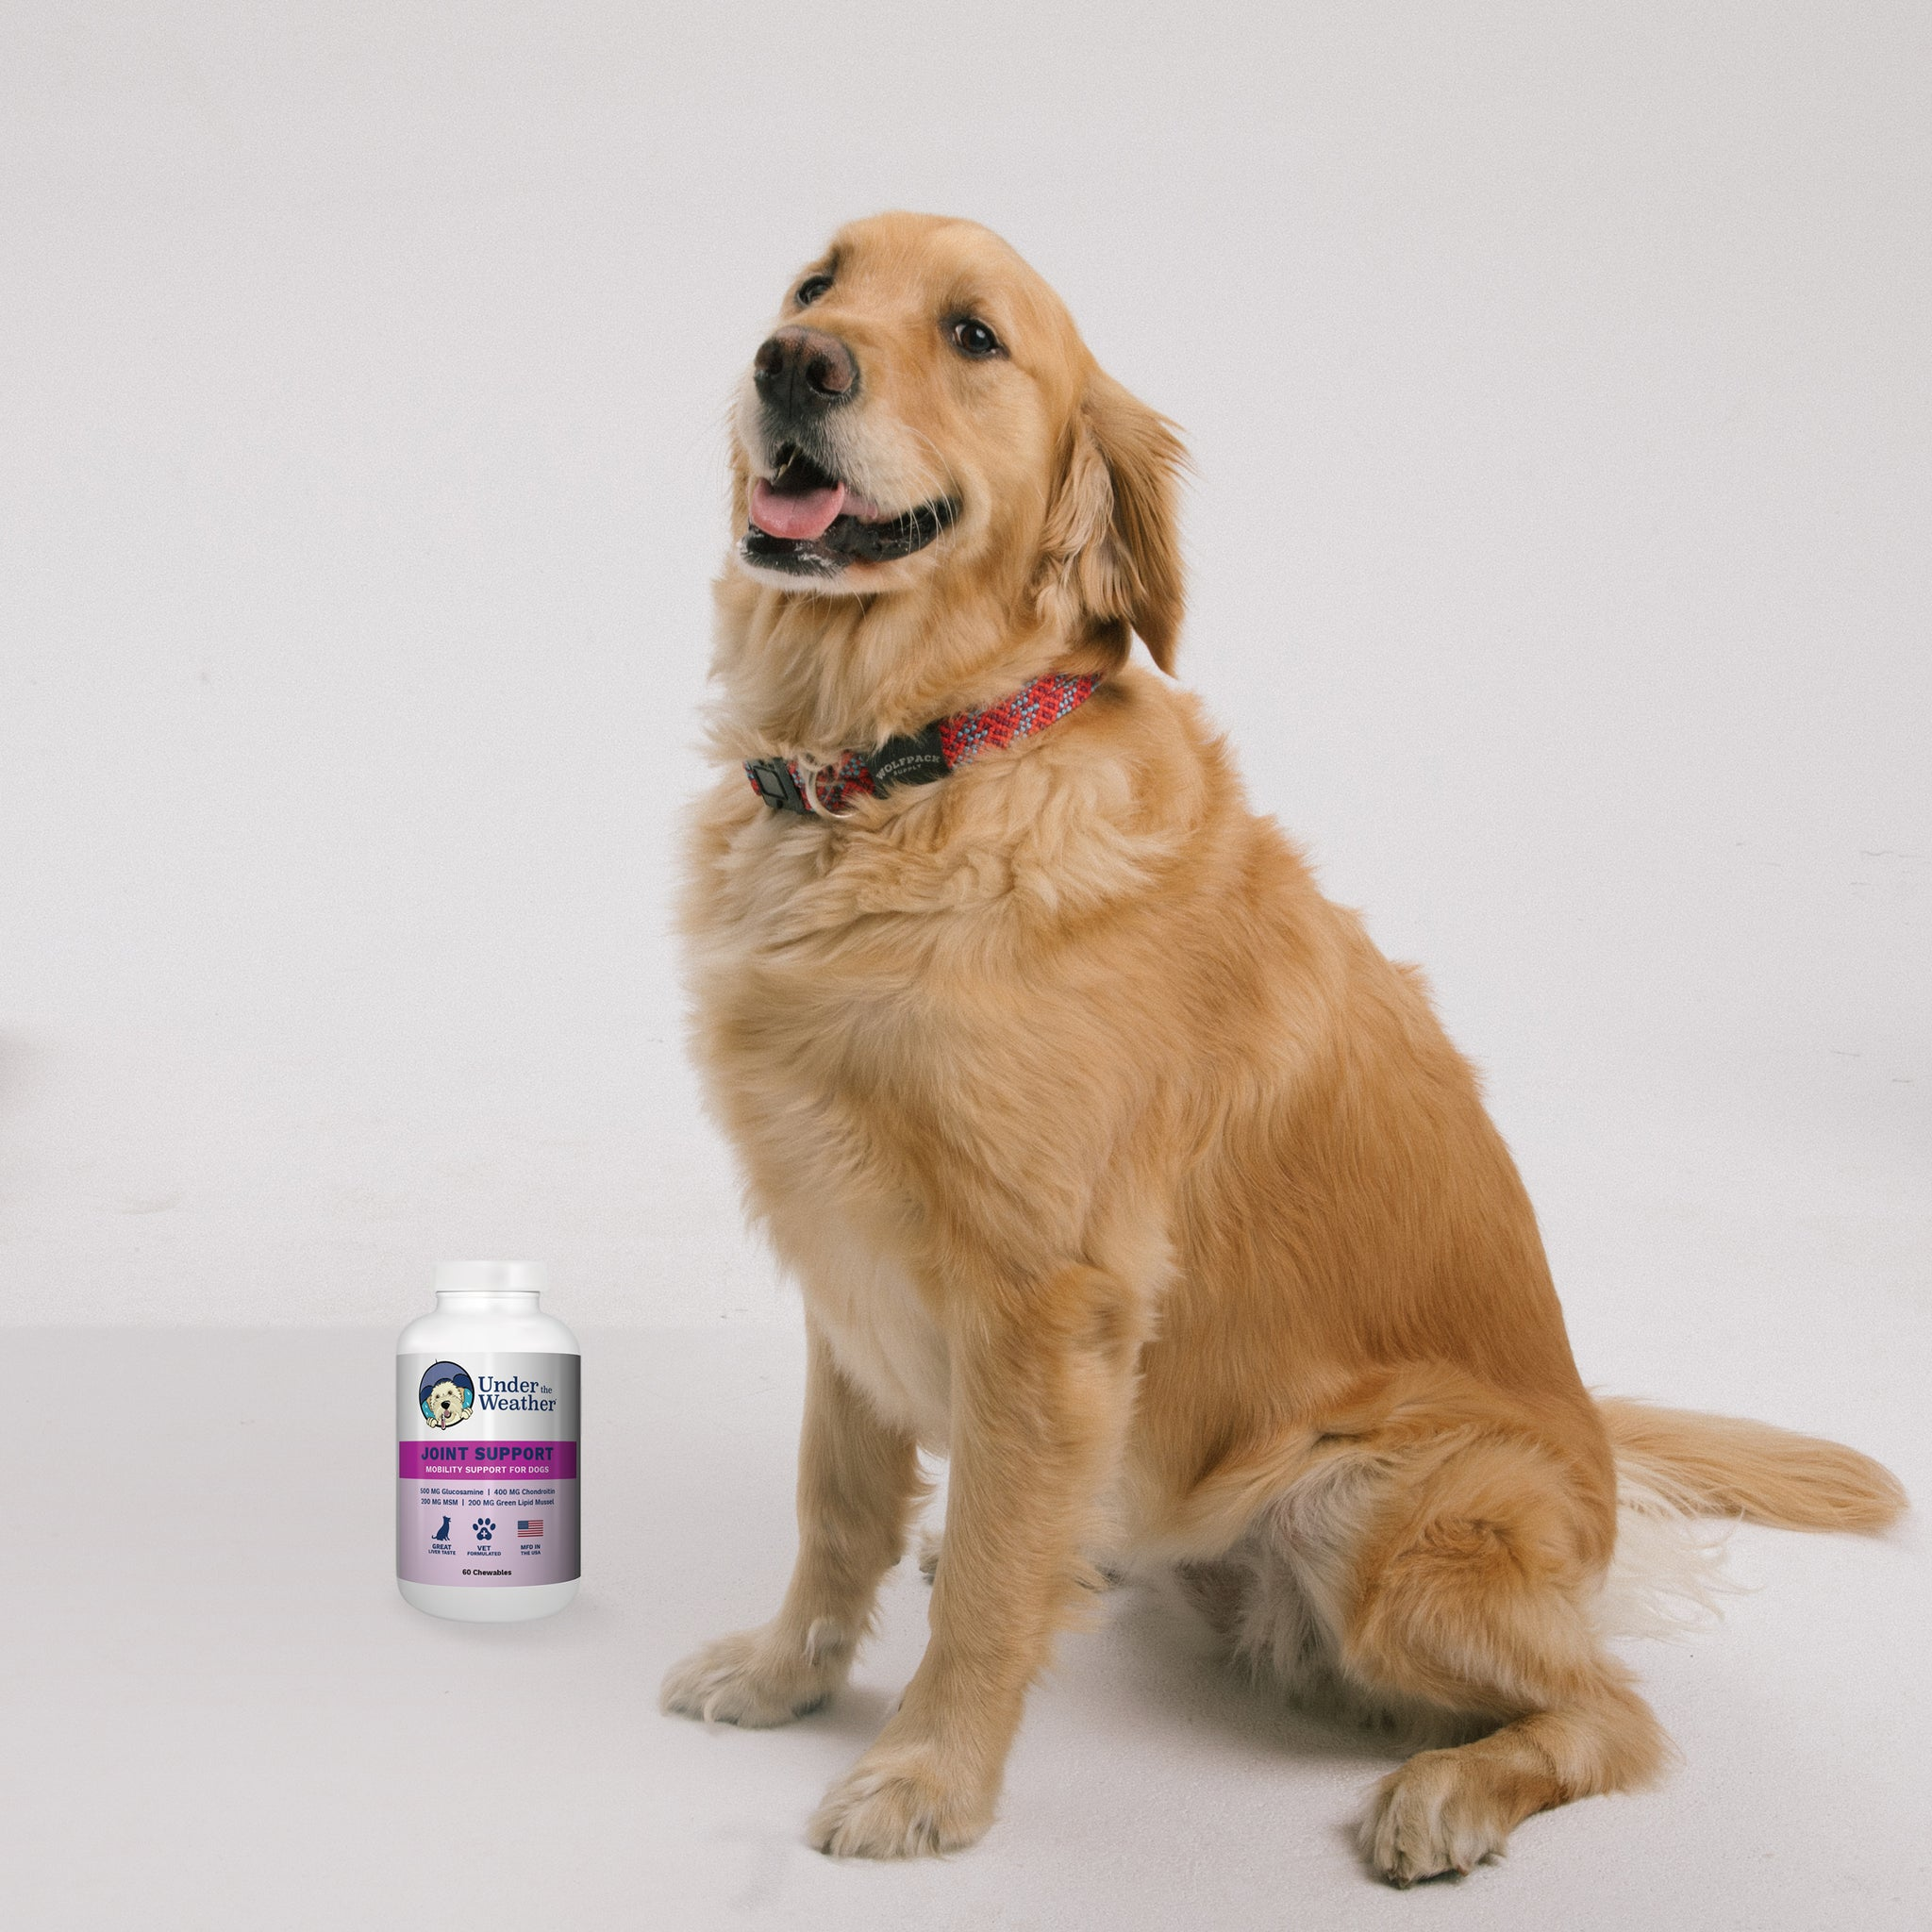 Joint Support Chewable Tablets For Dogs